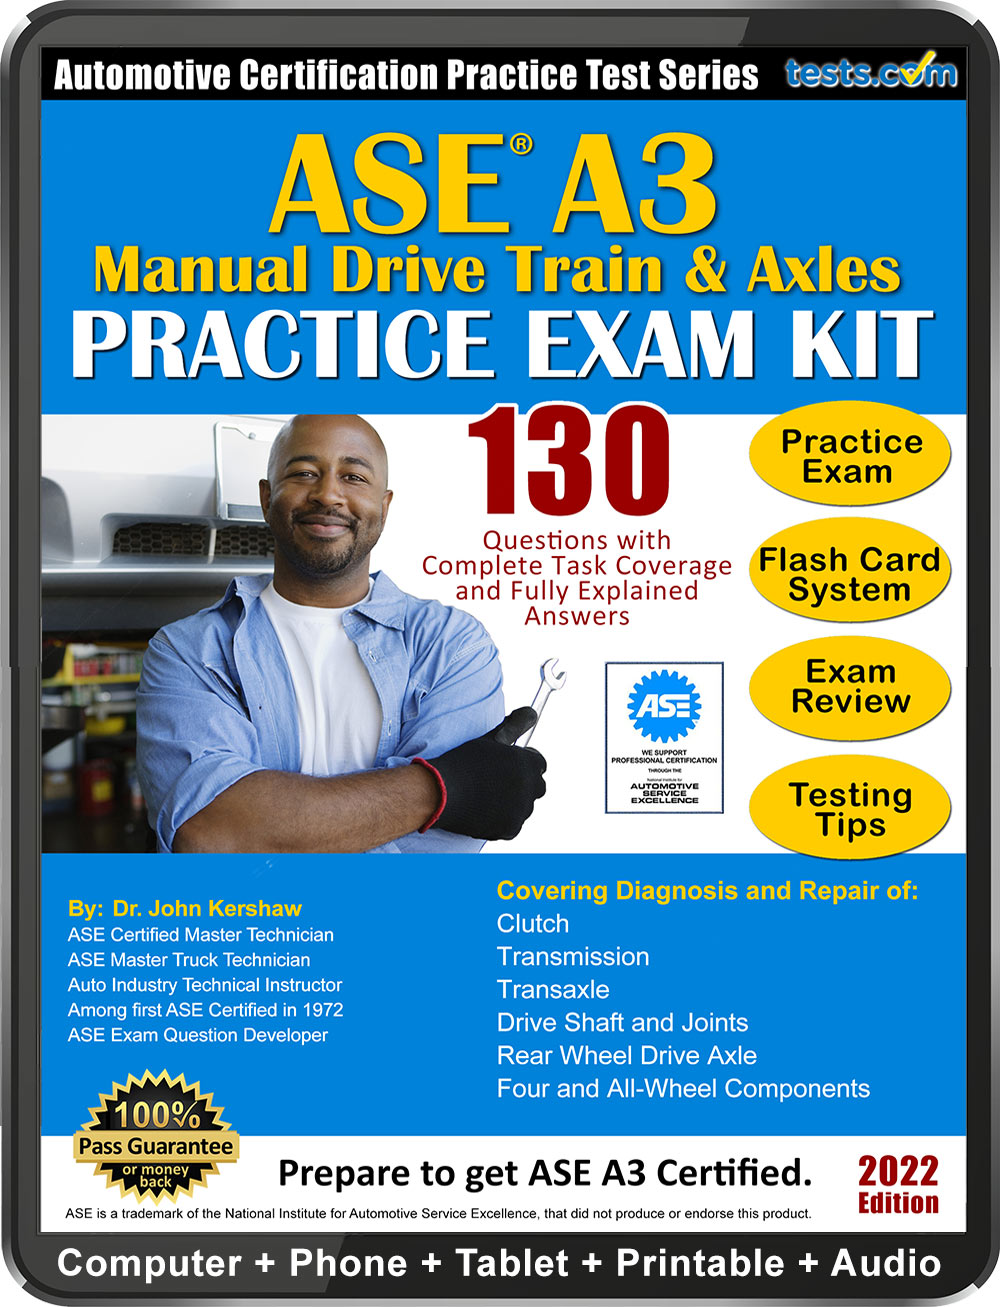 Ase a3 practice test kit xflitez Choice Image